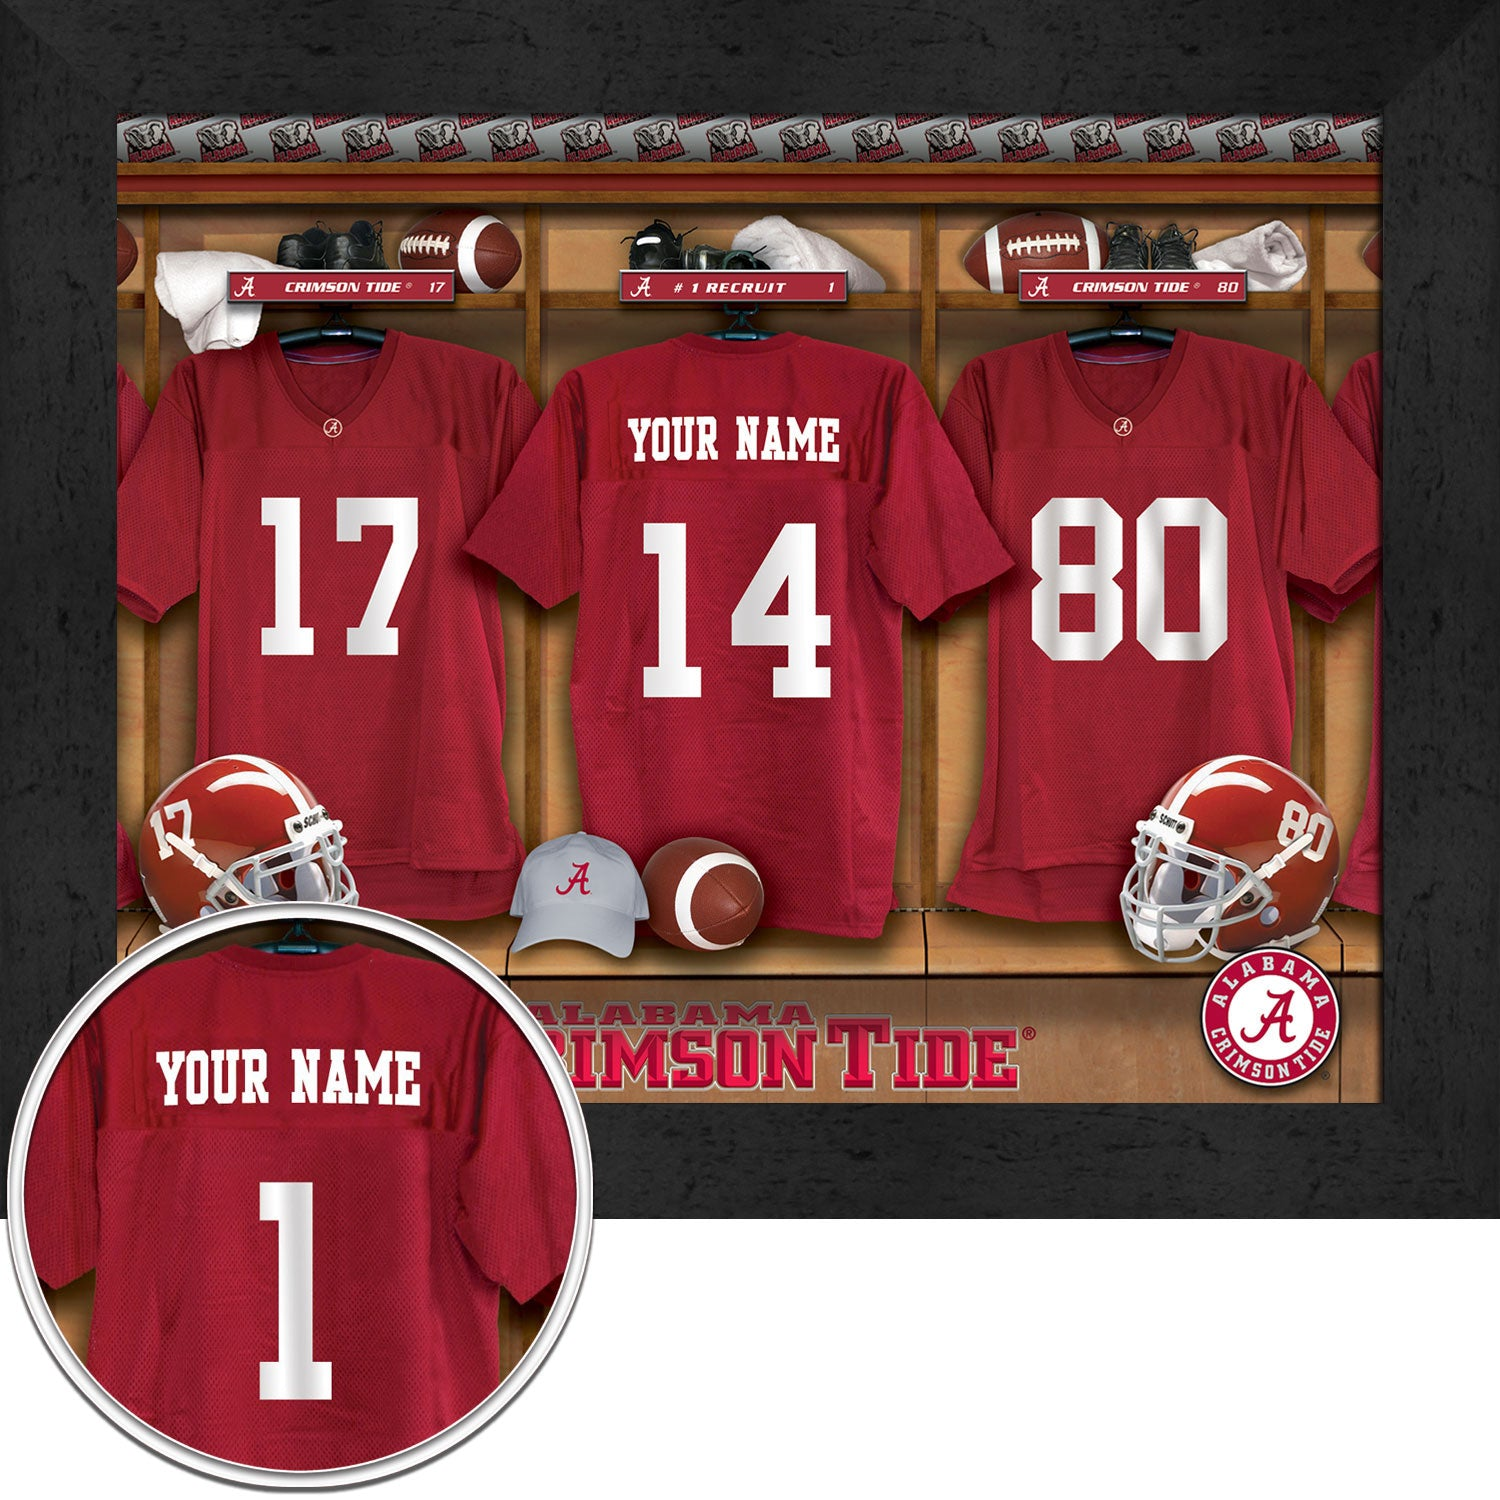 e53ab0c9dd6 Personalized. Loading zoom. PreviousNext. 1  2. Personalized College  Football Locker Room Signs - Alabama Crimson Tide